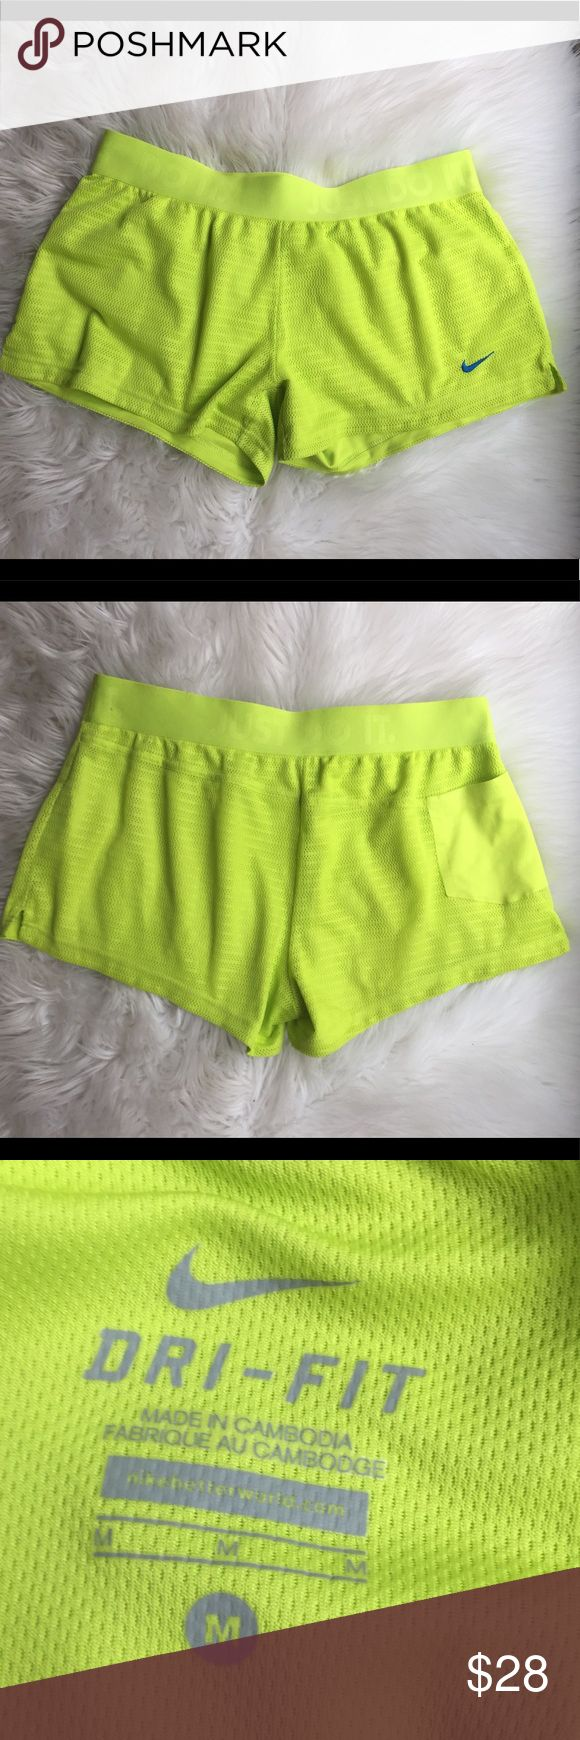 Neon green Nike athletic shorts ✨ These are in brand new condition, worn once! They have a great fit and are the perfect workout short! They are short shorts. ✨ Nike Shorts